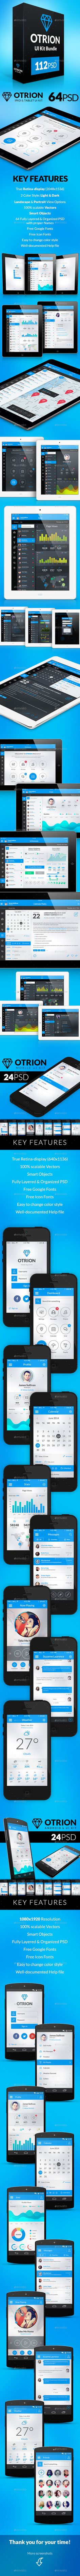 Otrion UI Kit Bundle